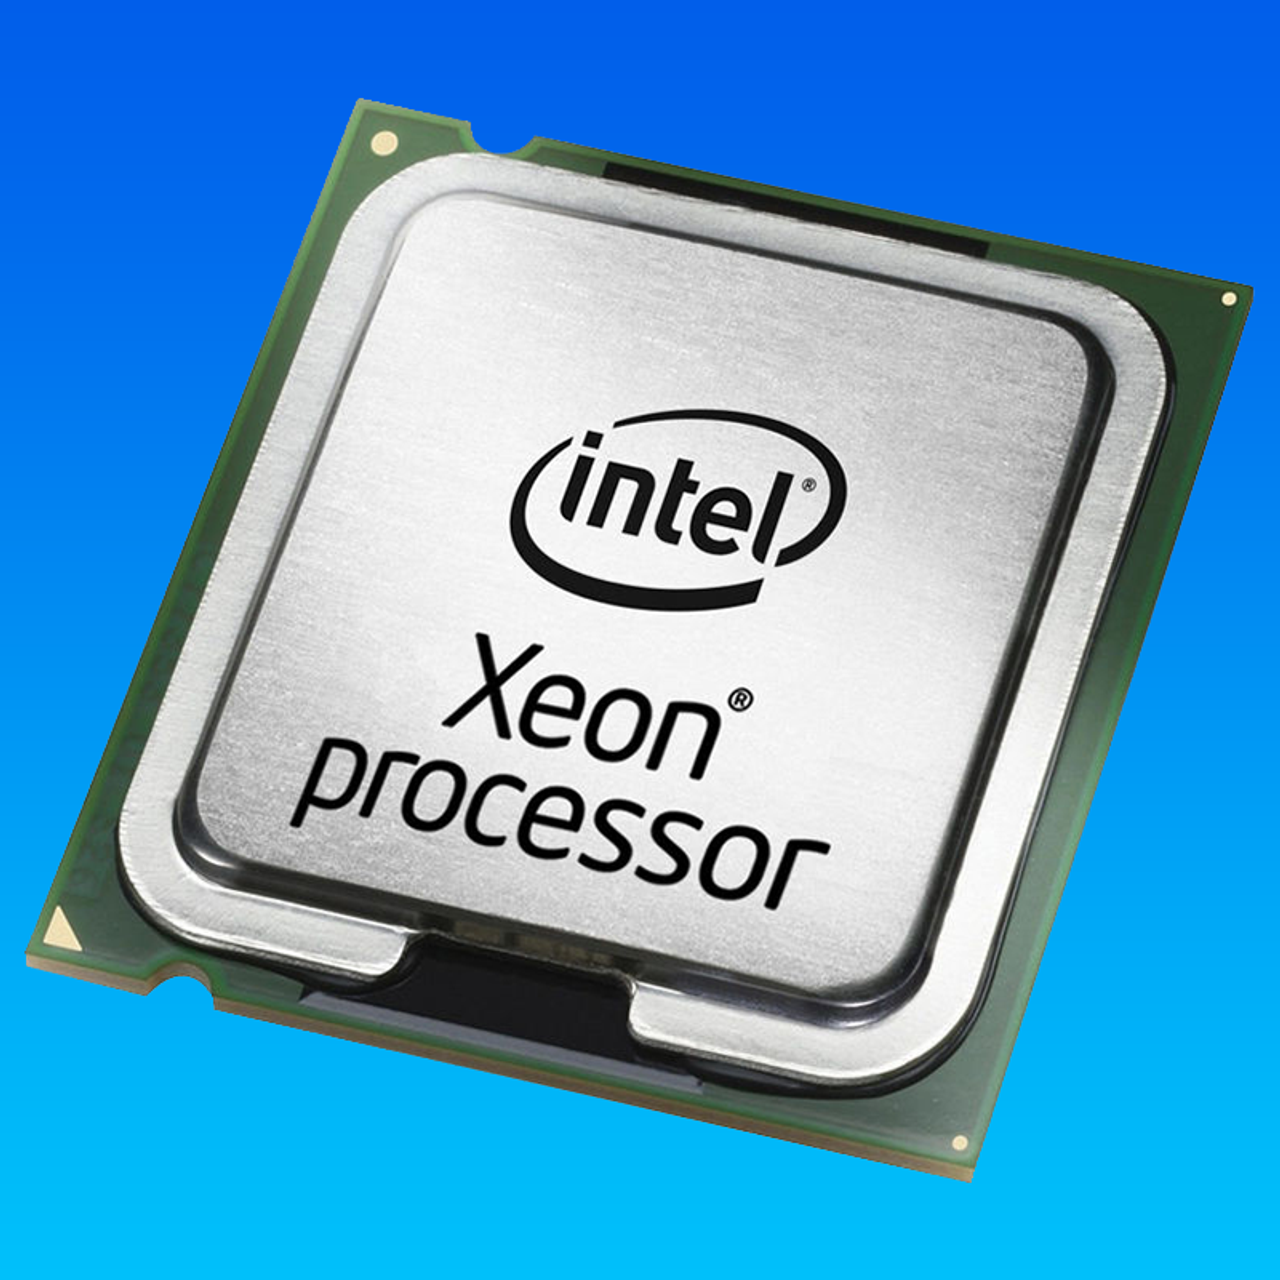 Intel Xeon E5 2643 V3 3 4ghz 20mb Cache 6 Core Processor Tech Supply Direct